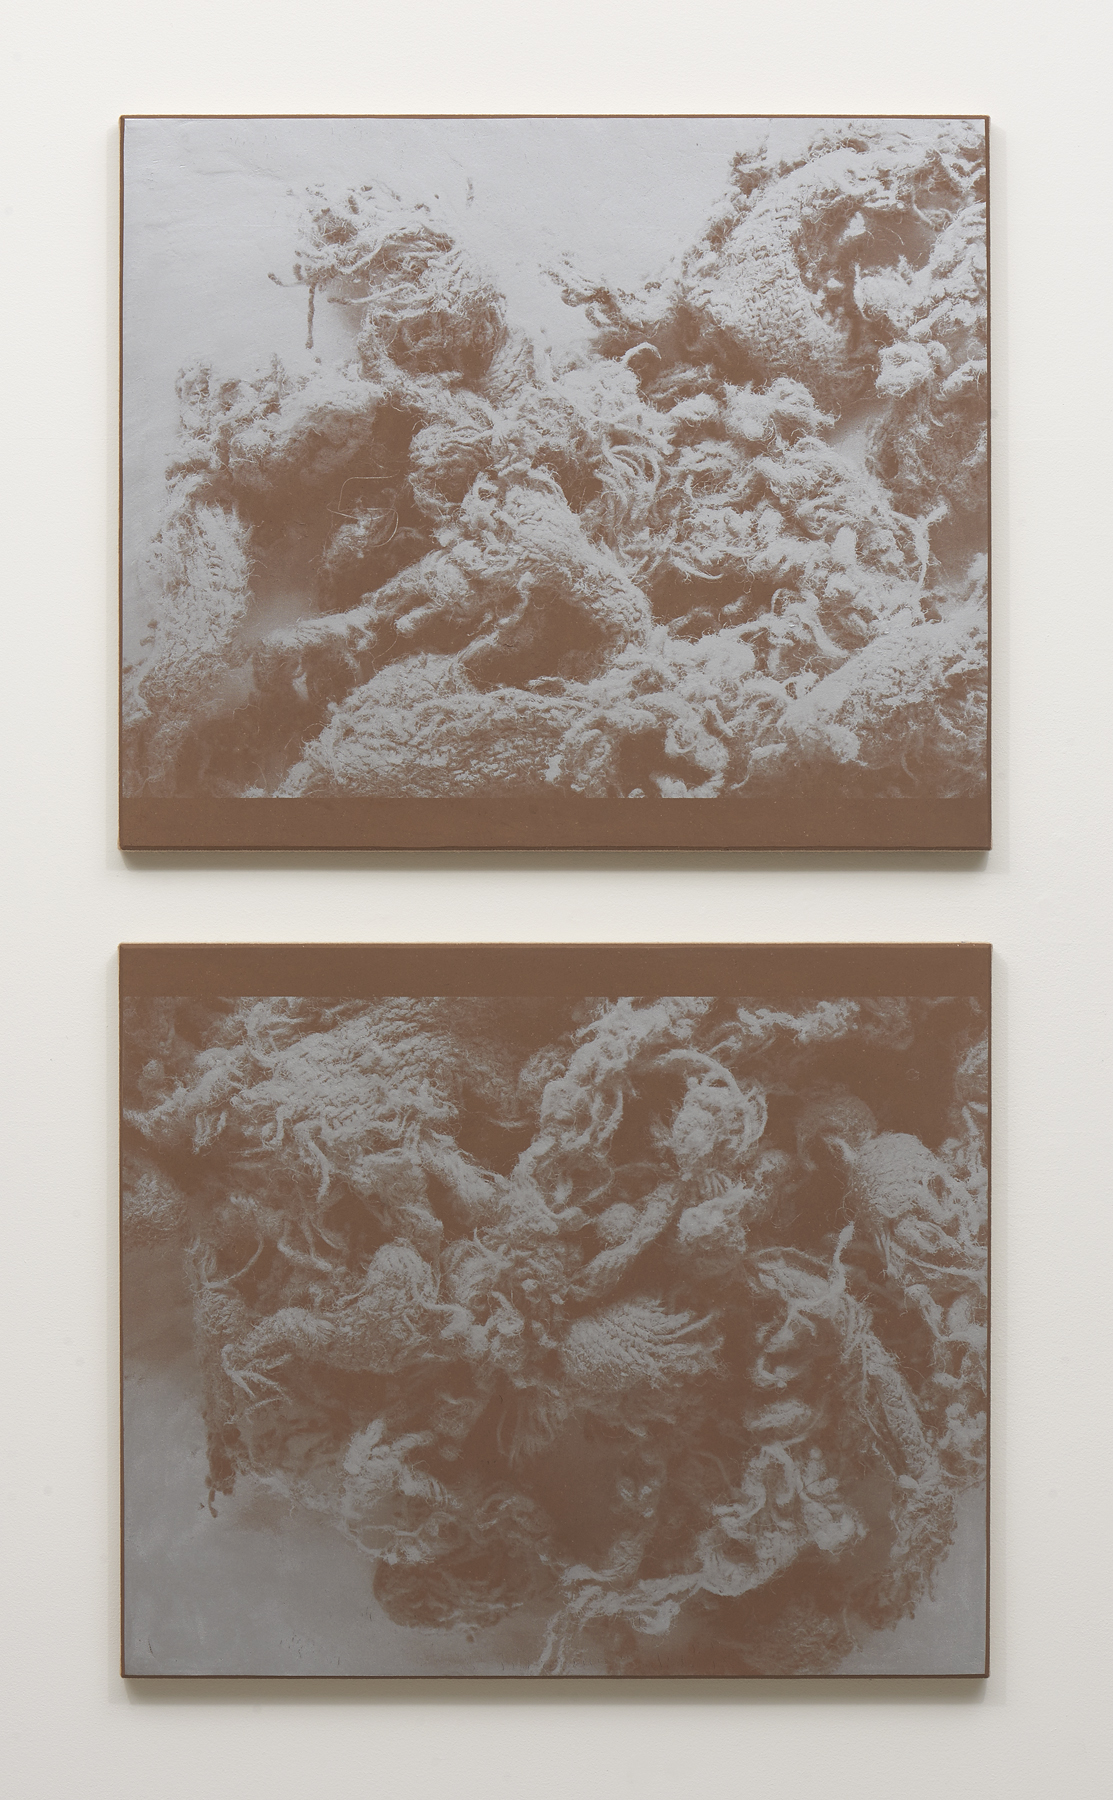 N. Dash , Untitled, 2018, Adobe, silkscreen ink, jute, wood and aluminum support, Two panels, each: 39 x 33 inches